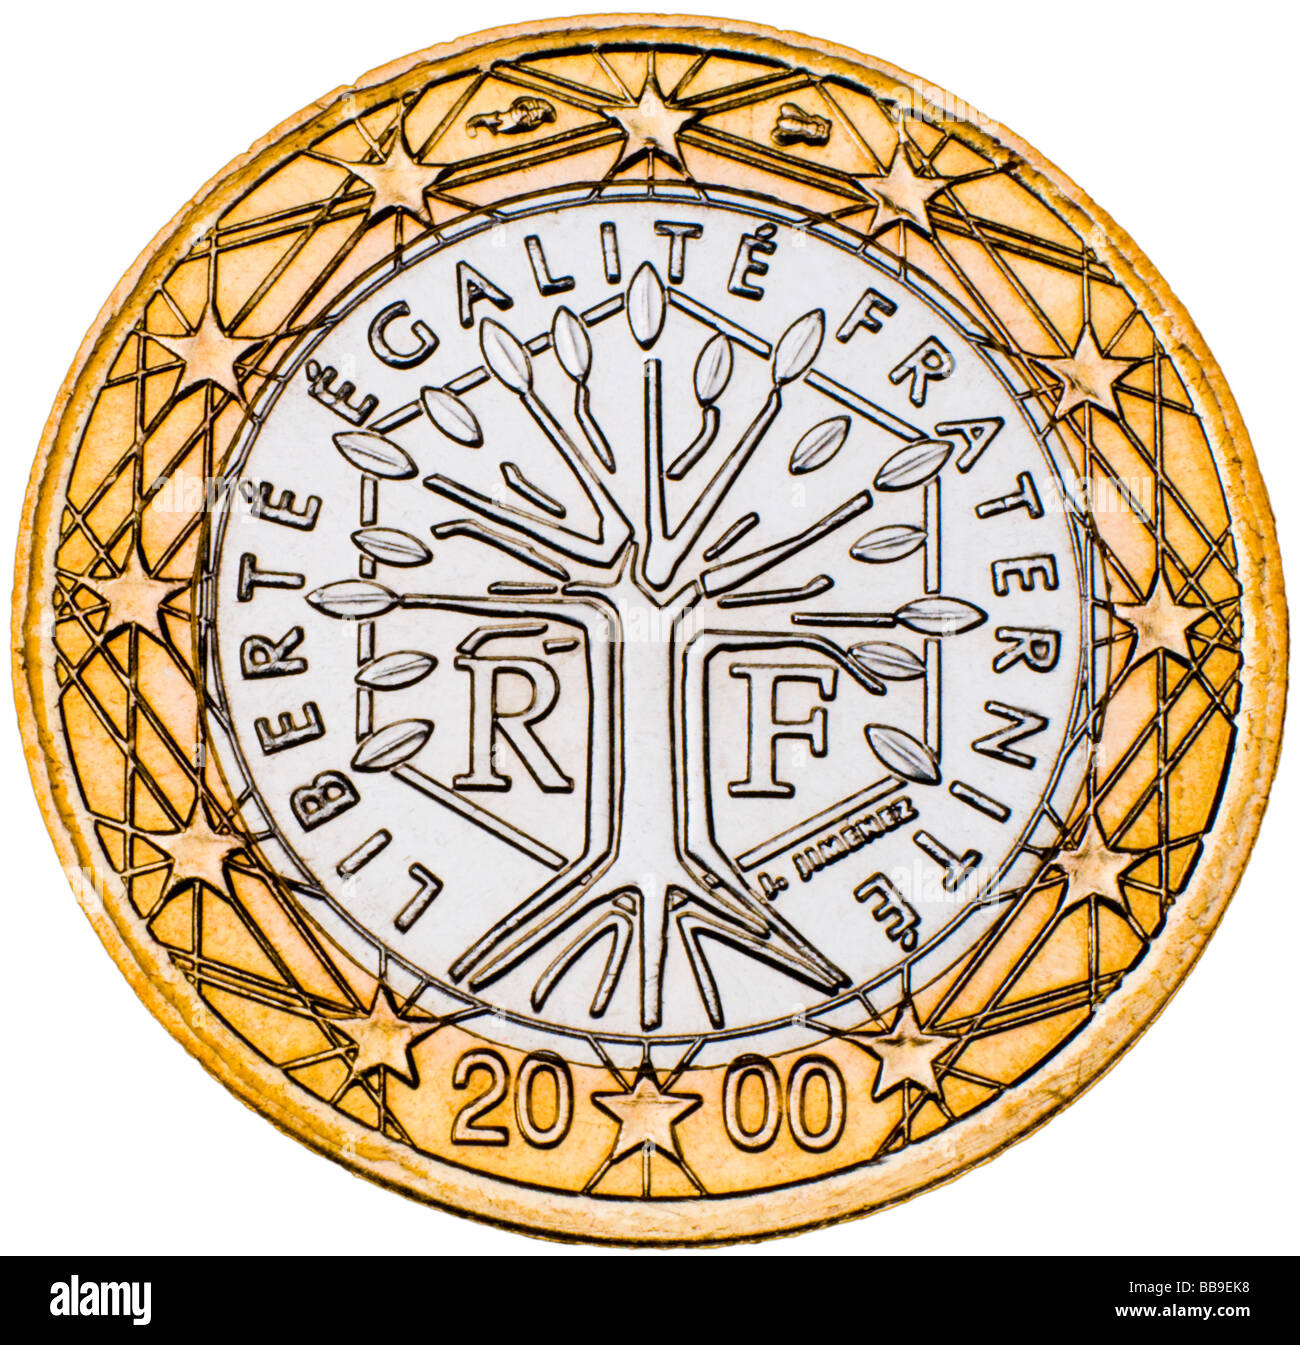 French 1 Euro Coin reverse - Stock Image